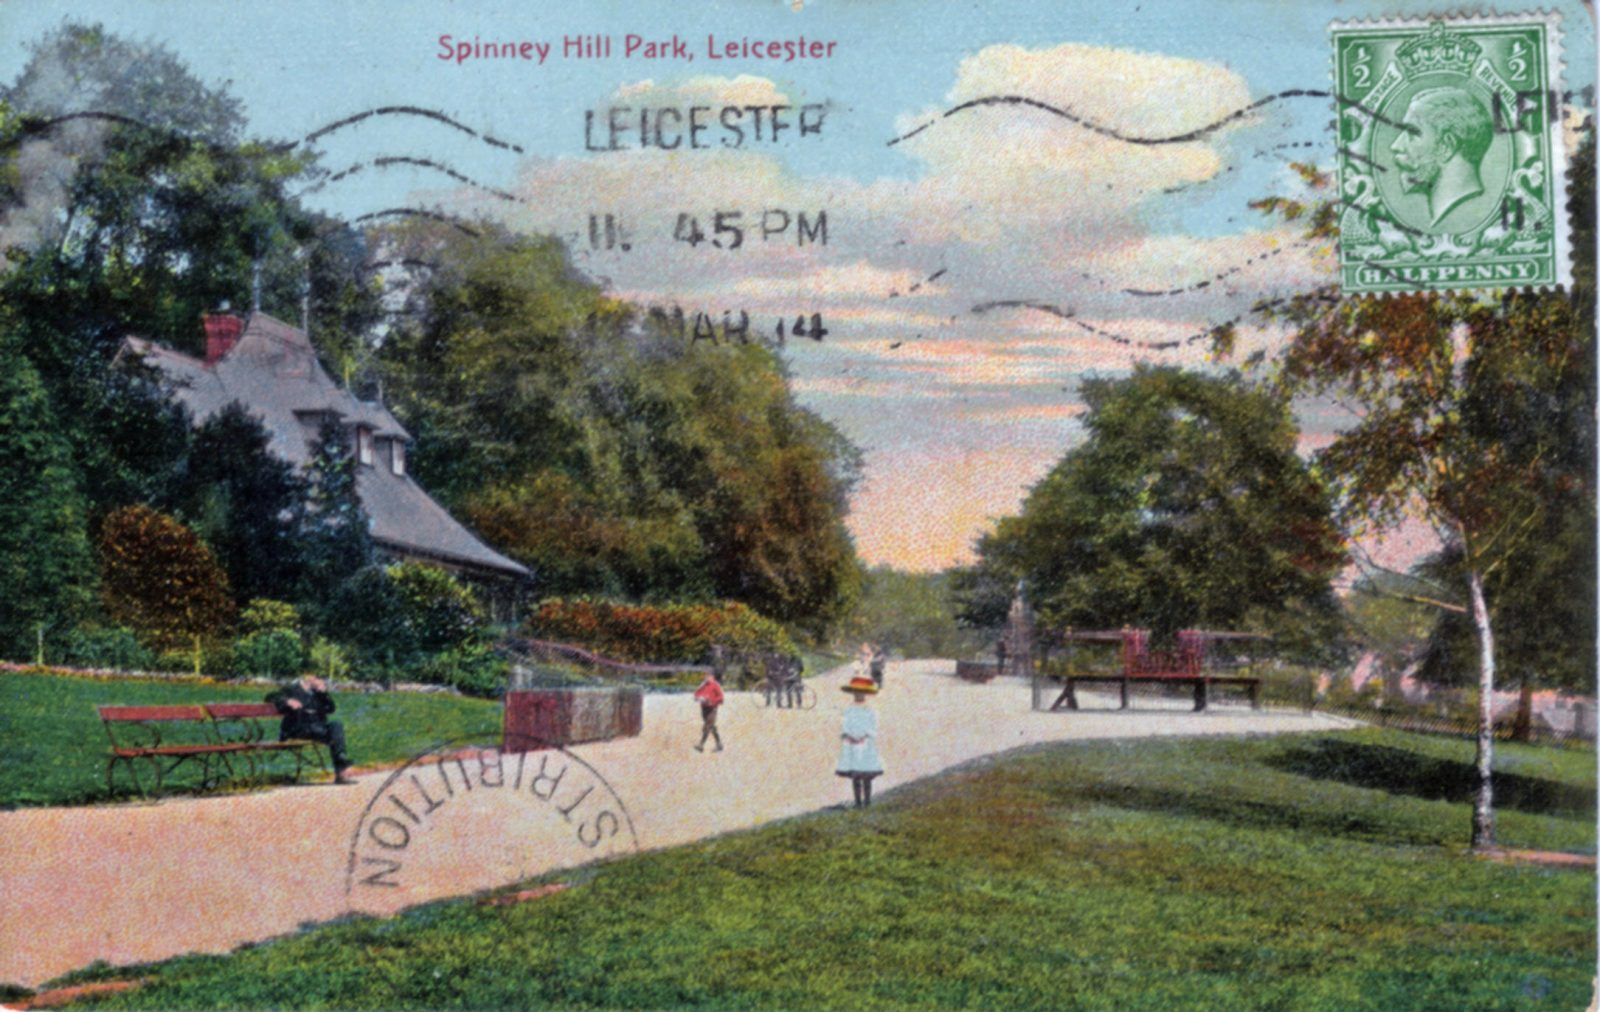 Spinney Hill Park, Leicester. 1901-1920: Pavilion and broad avenue. Children walking. Man sitting. Franked 1904 (File:1066)